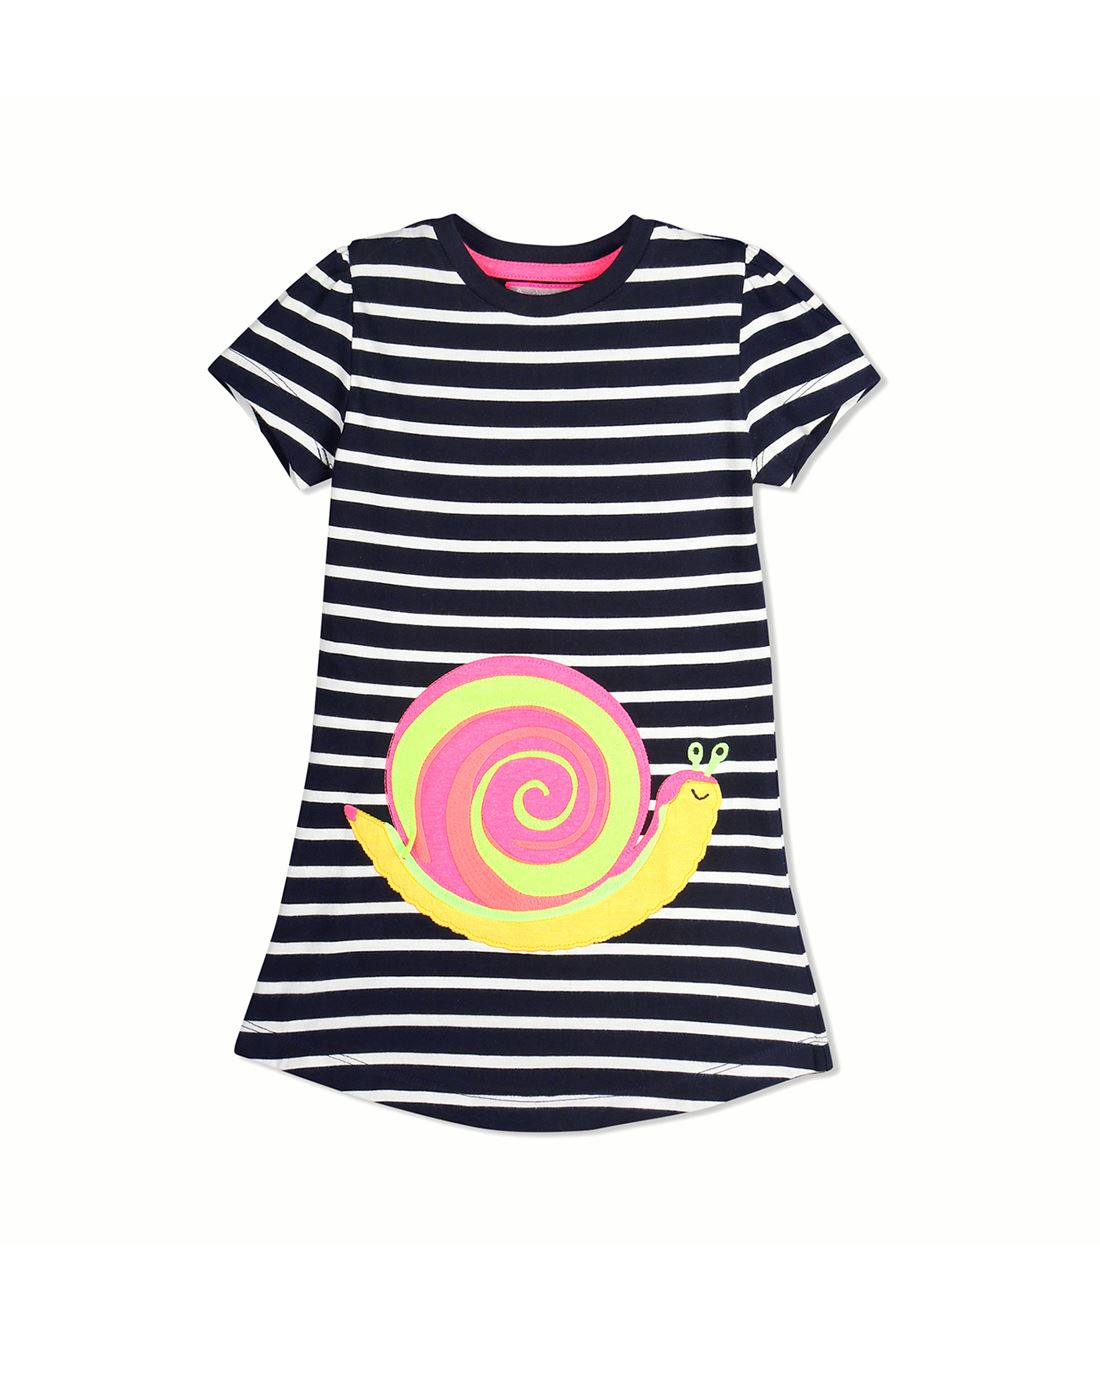 Cherry Crumble California Casual Wear Striped Girls Dresses